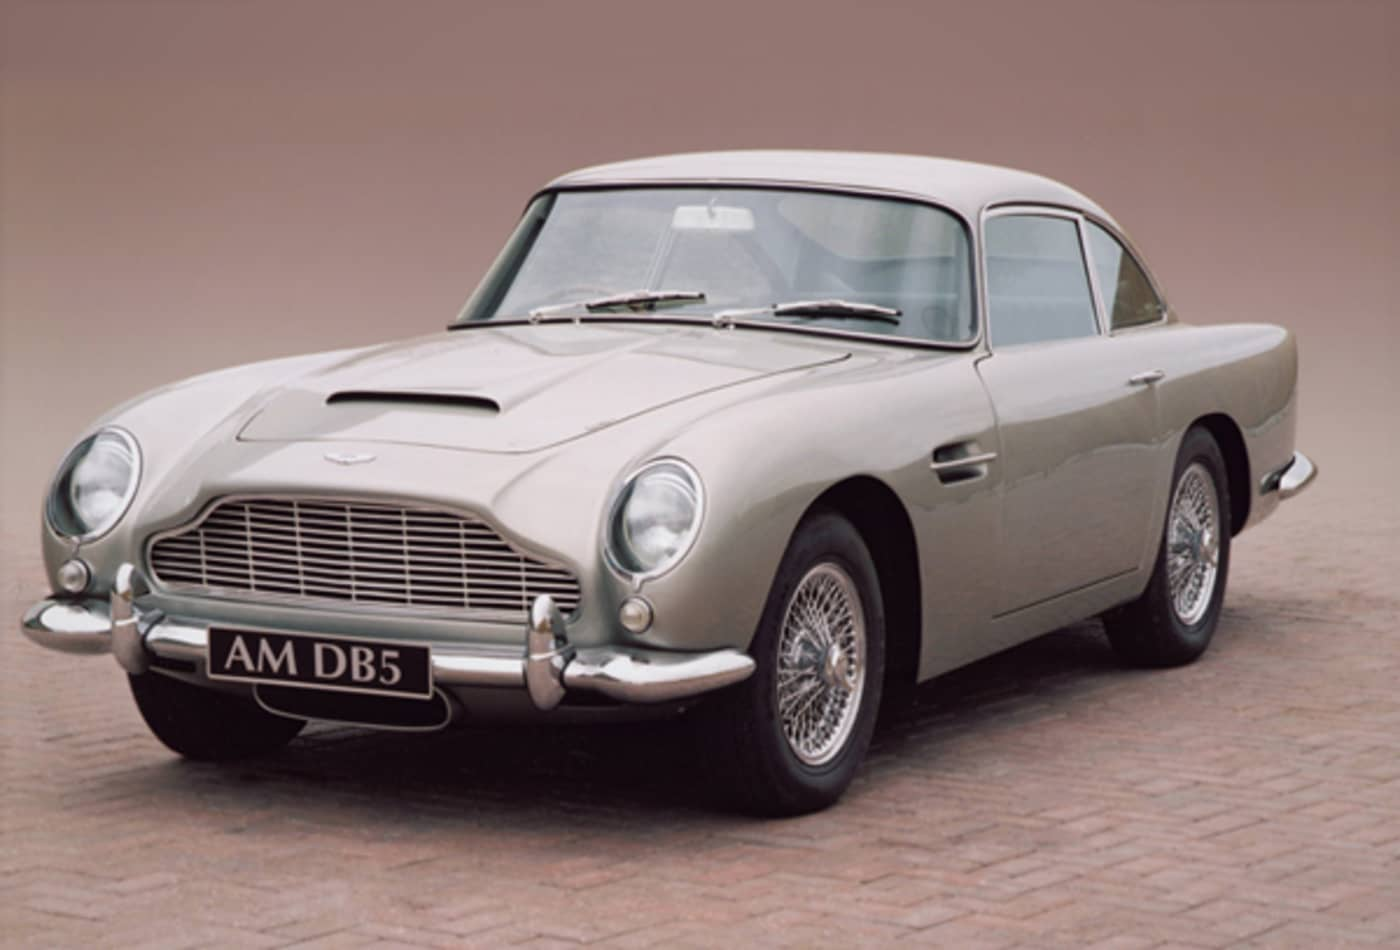 Aston-Martin-DB5-Top-10-Best-Looking-Cars-All-Time-CNBC.jpg